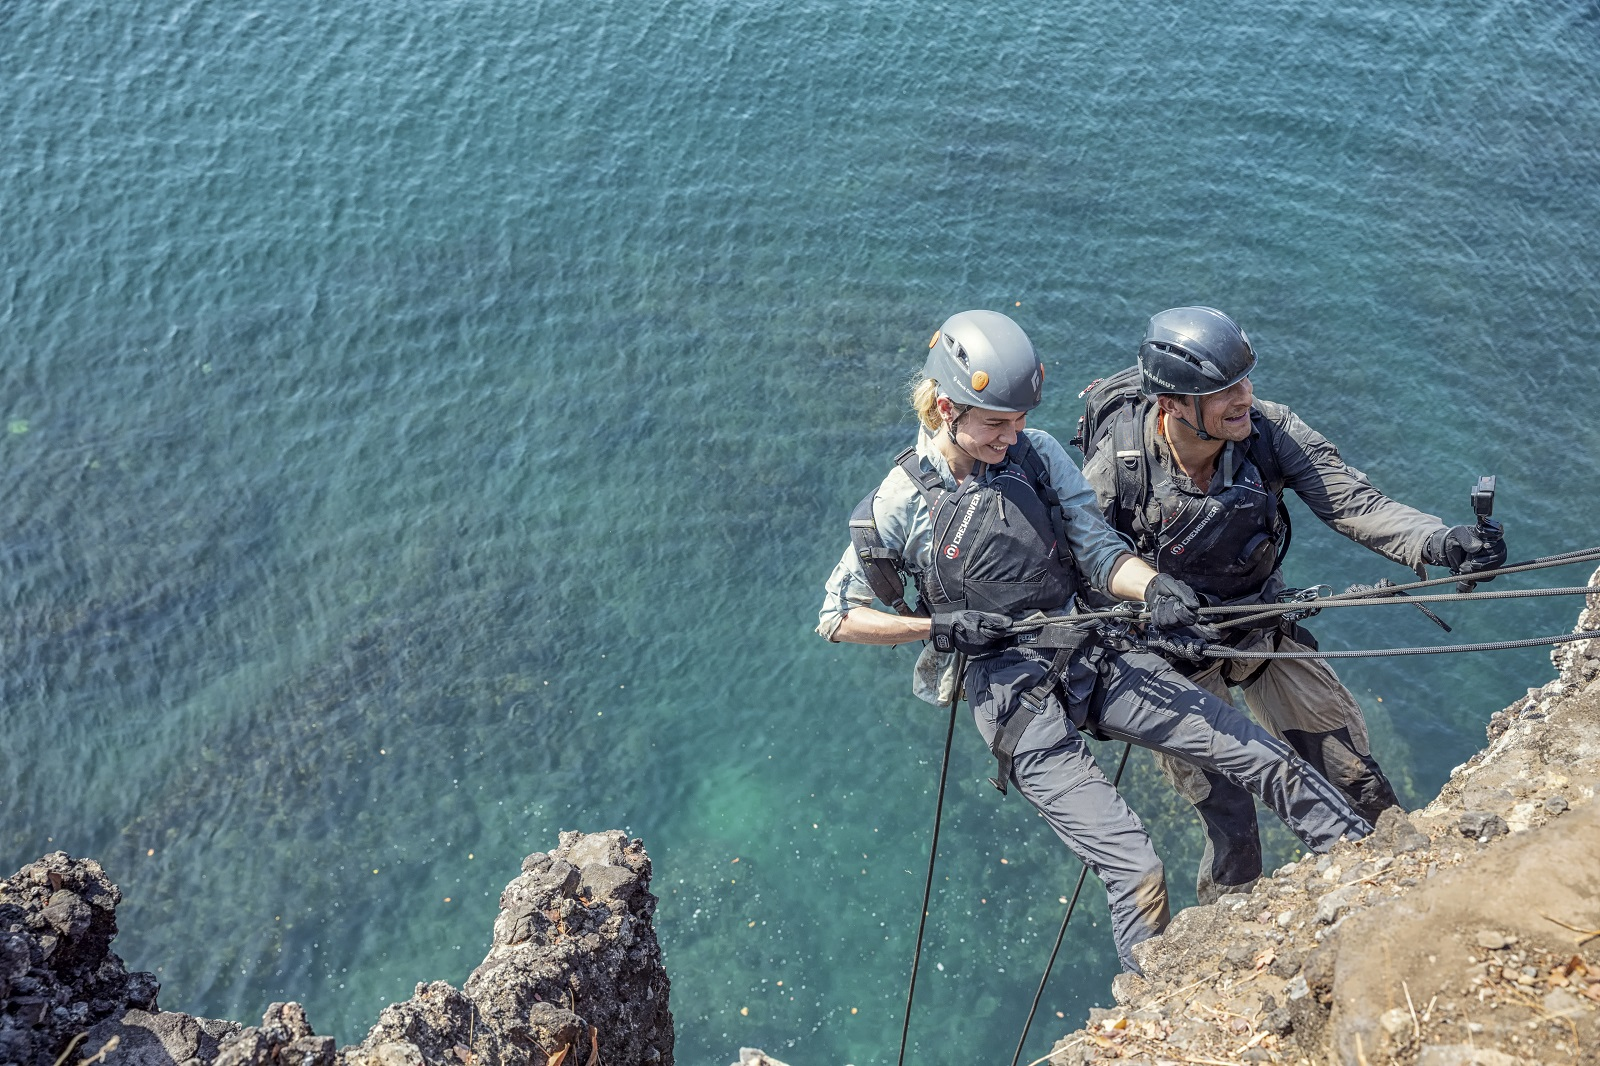 Panama - (L to R) Brie Larson and Bear Grylls rappel down a sheer drop-off for National Geographic's RUNNING WILD WITH BEAR GRYLLS. (National Geographic/Ben Simms)